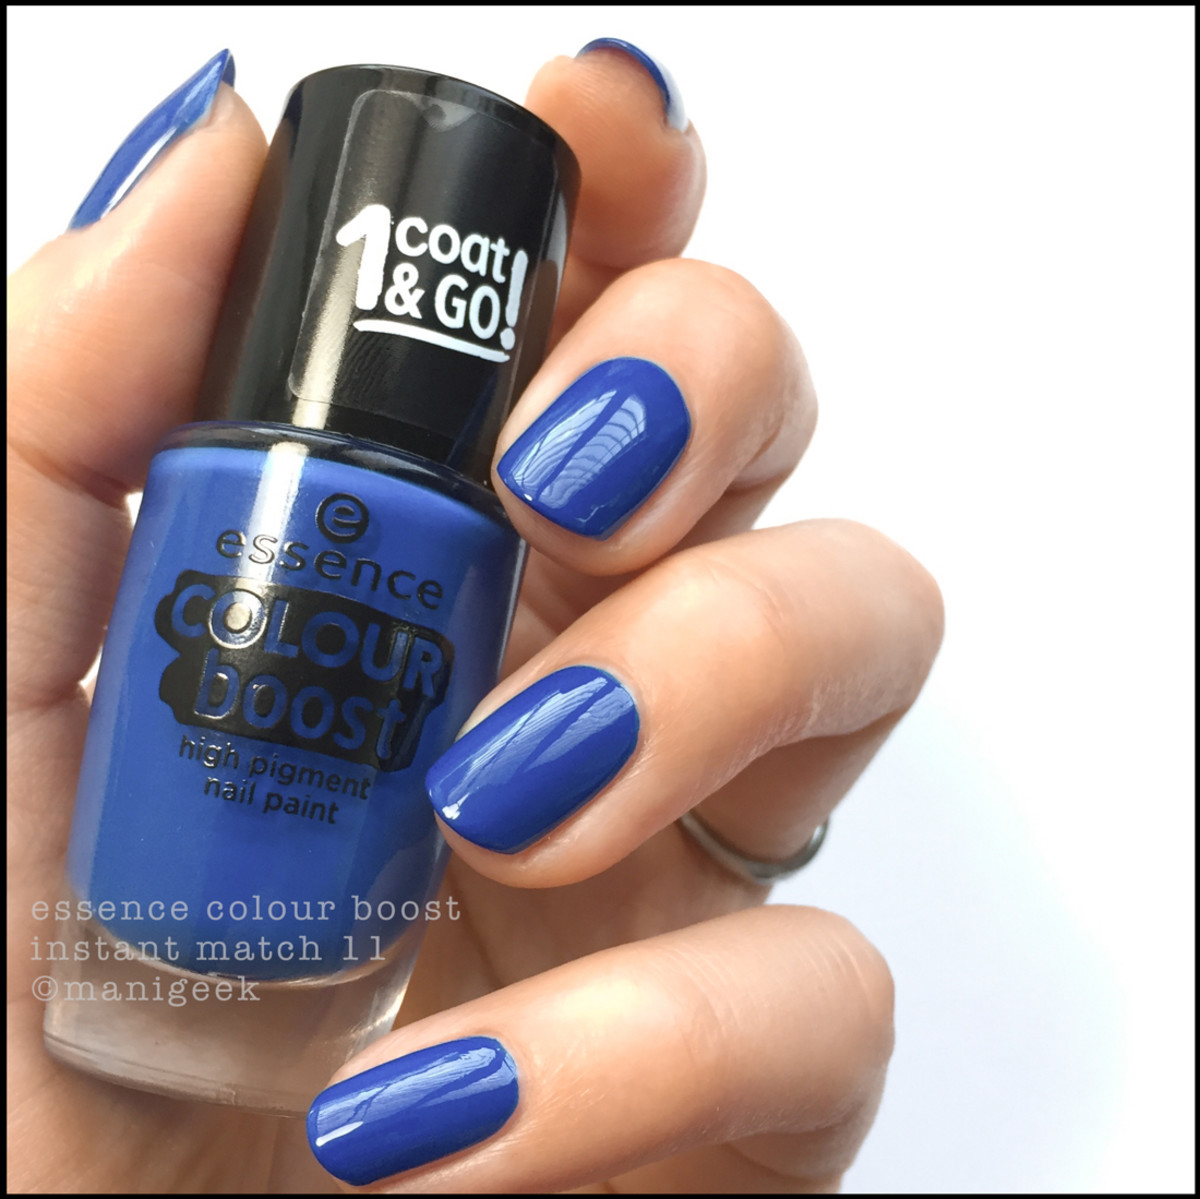 Essence Colour Boost Instant Match Nail Polish